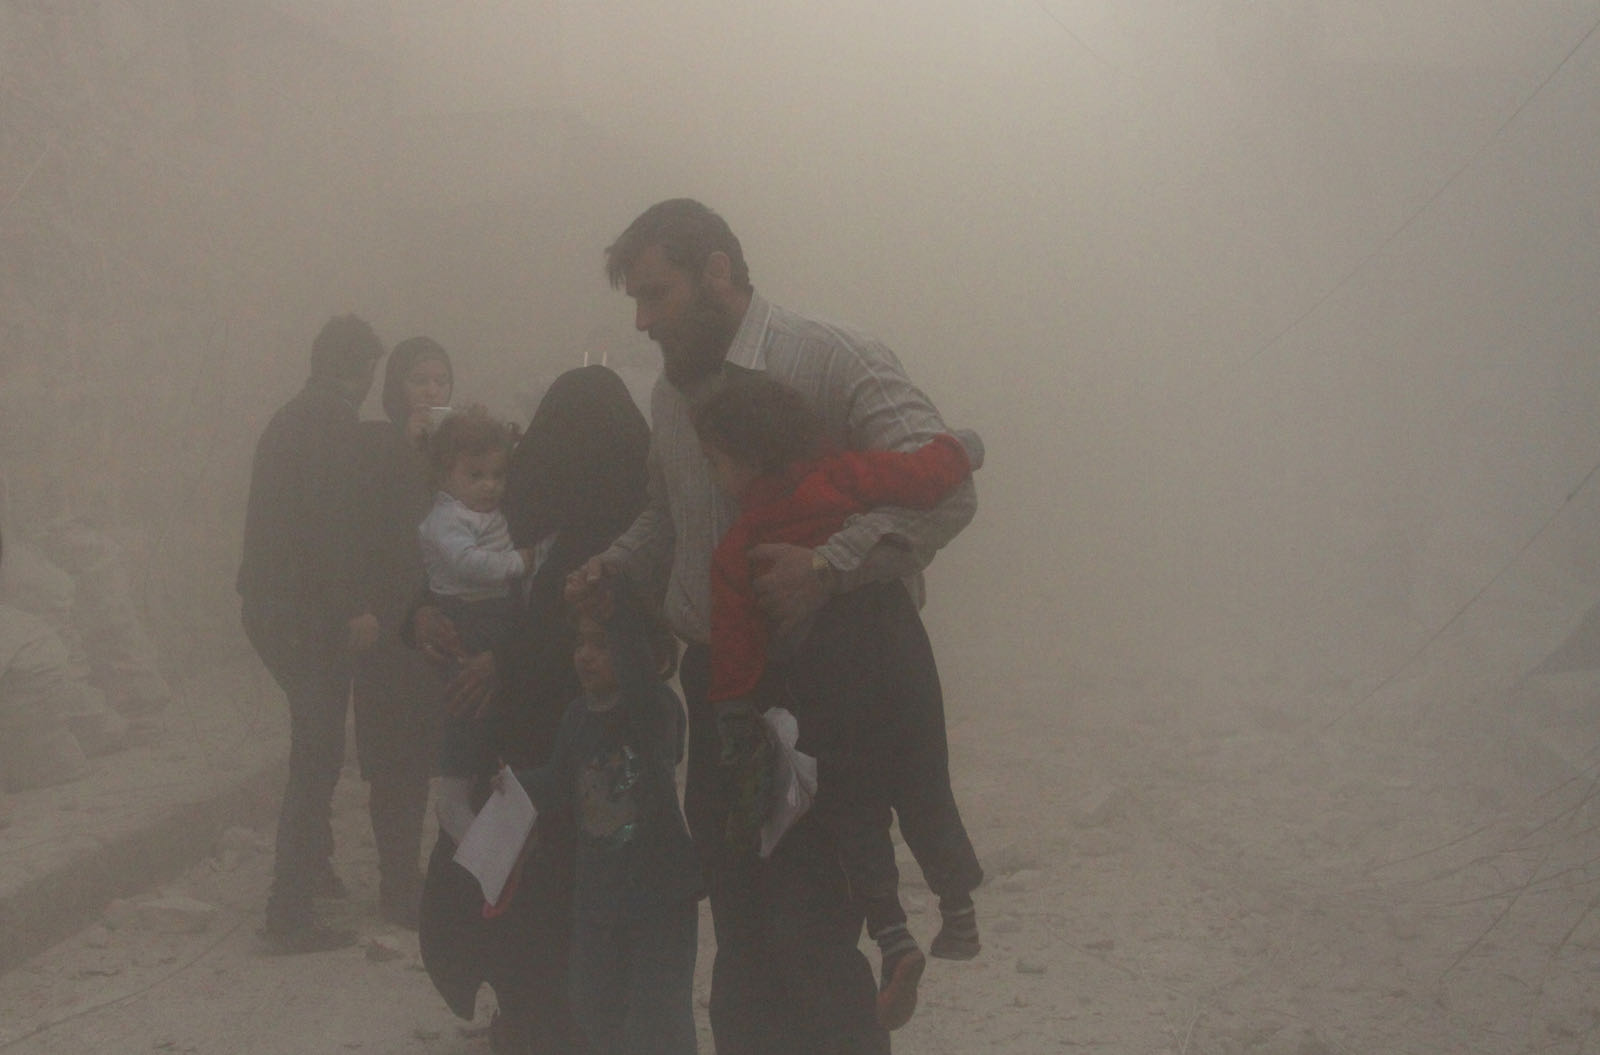 Civilians emerging from destruction caused in a bombing attack